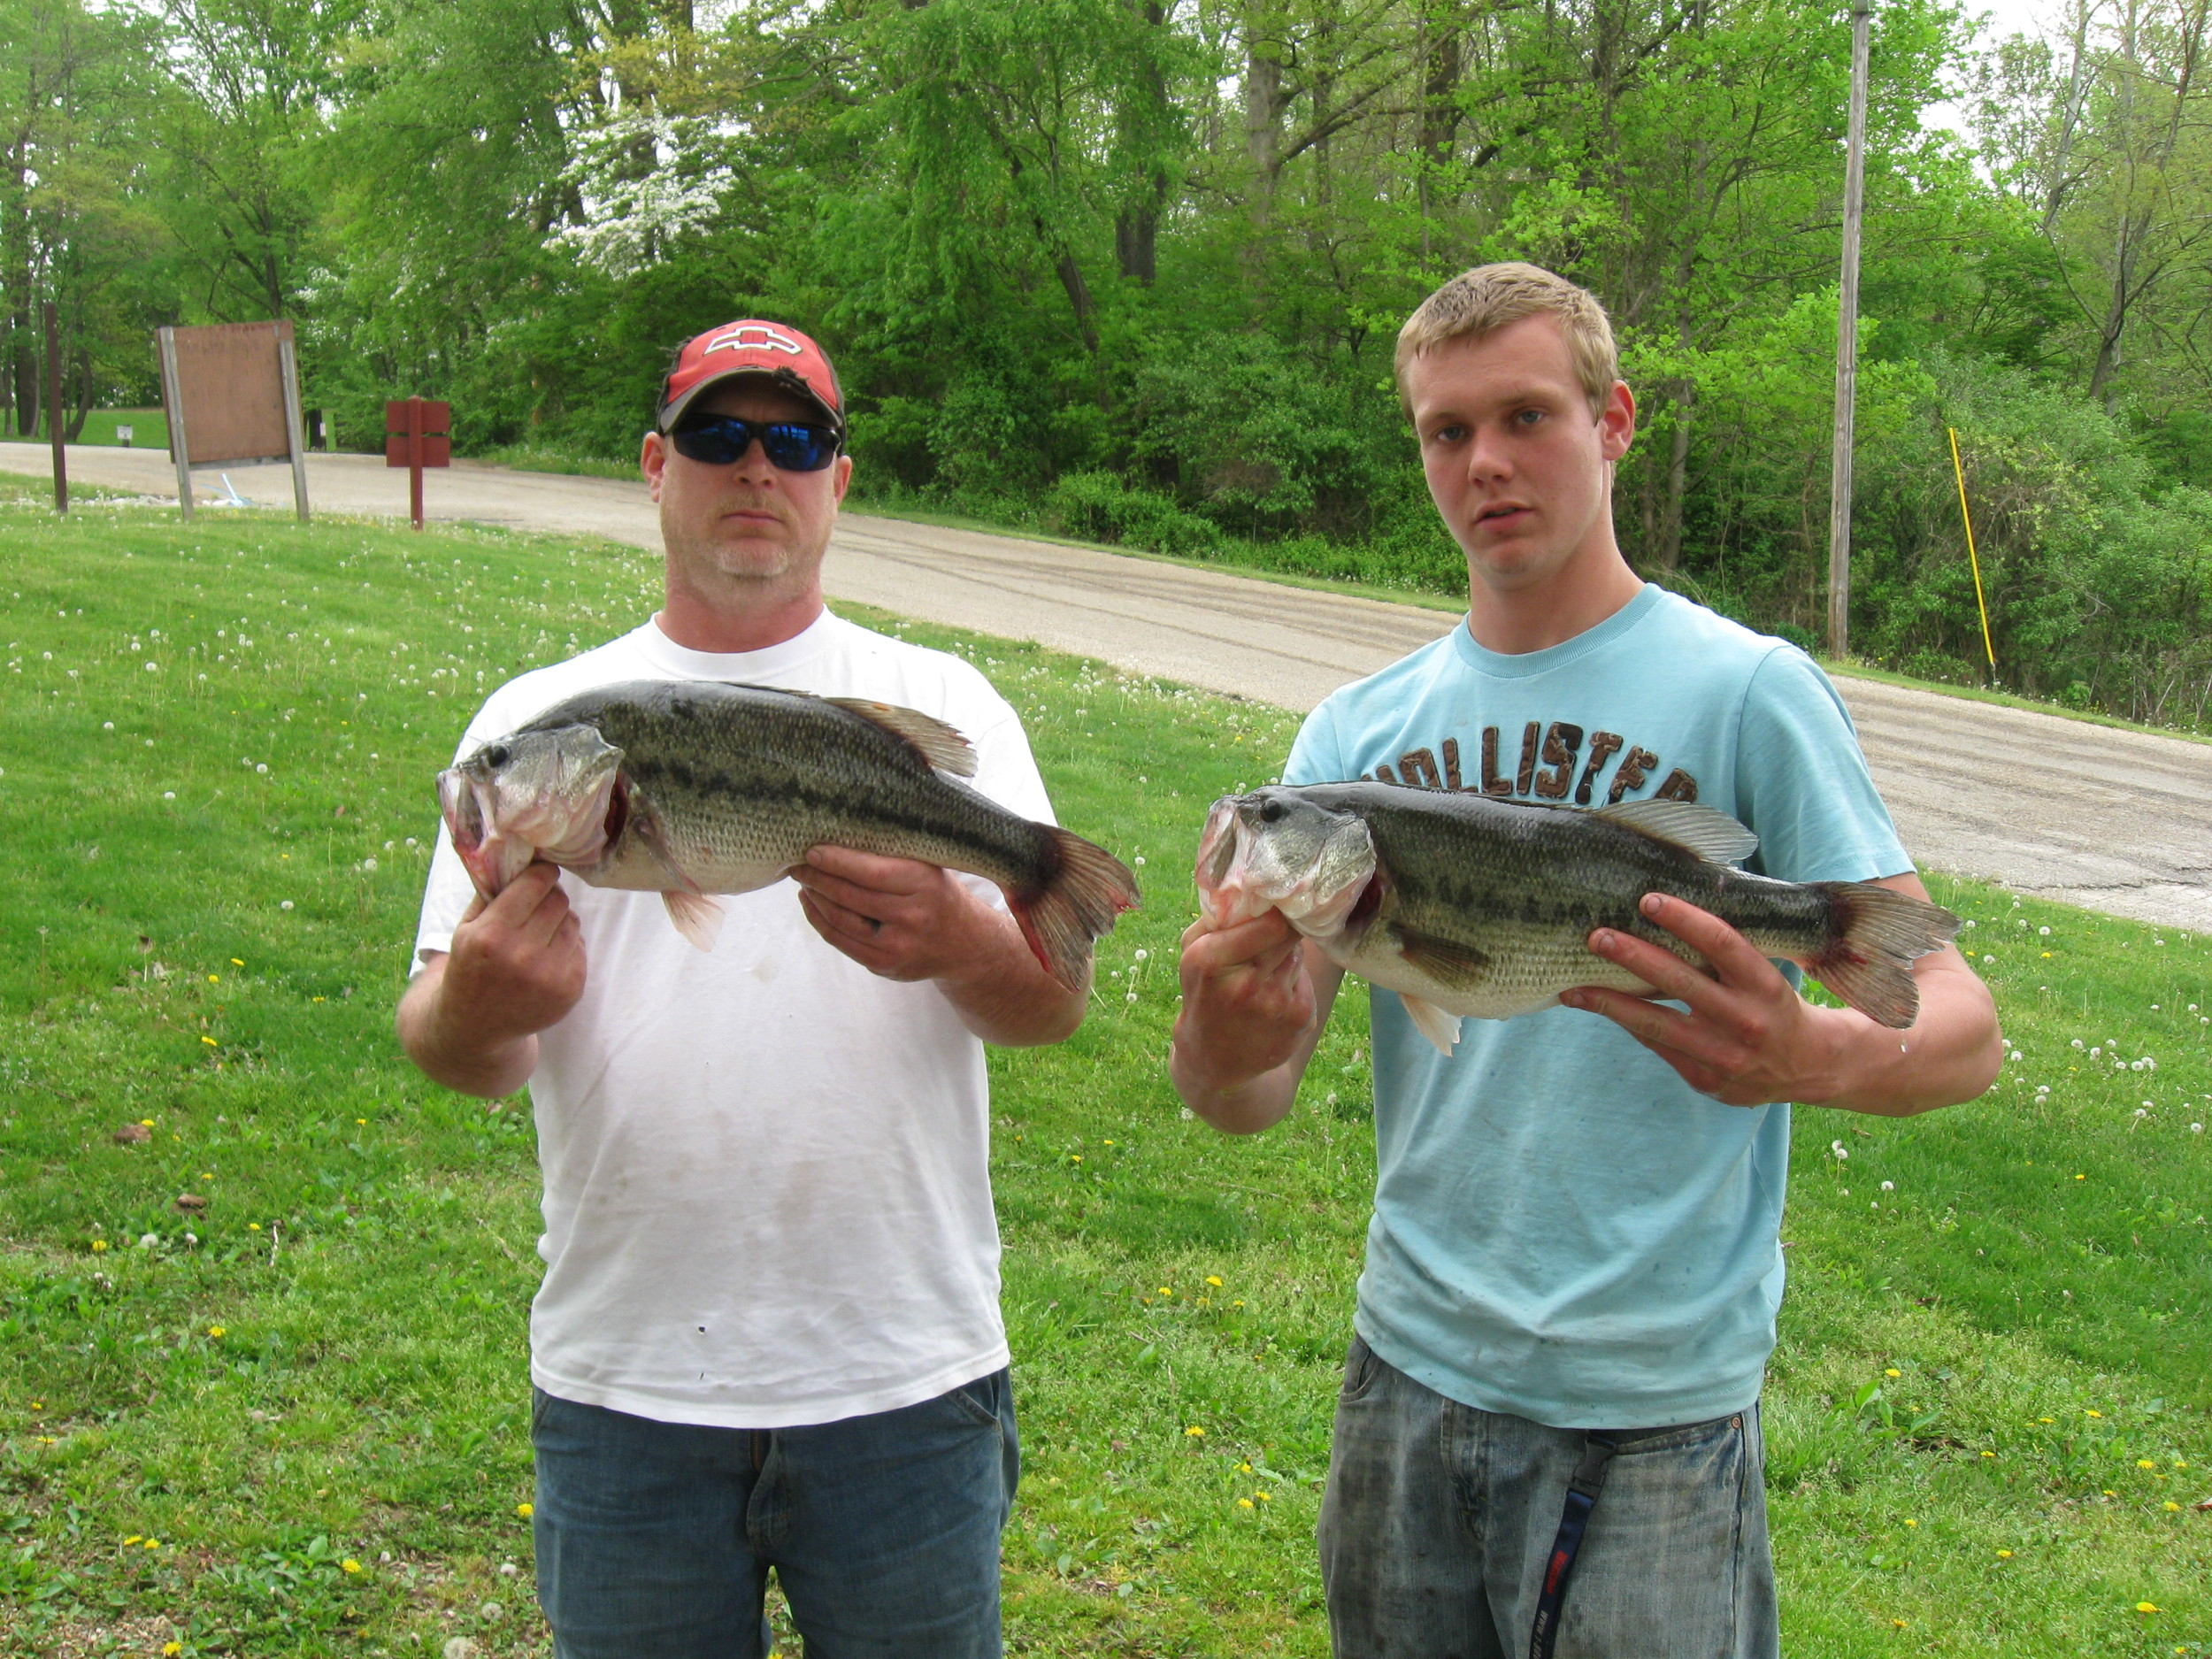 Two of our giant bass! The left fish was over 6lbs and the other over 5lbs! They won the    bass tournamen   t with a five fish catch of over 18lbs!